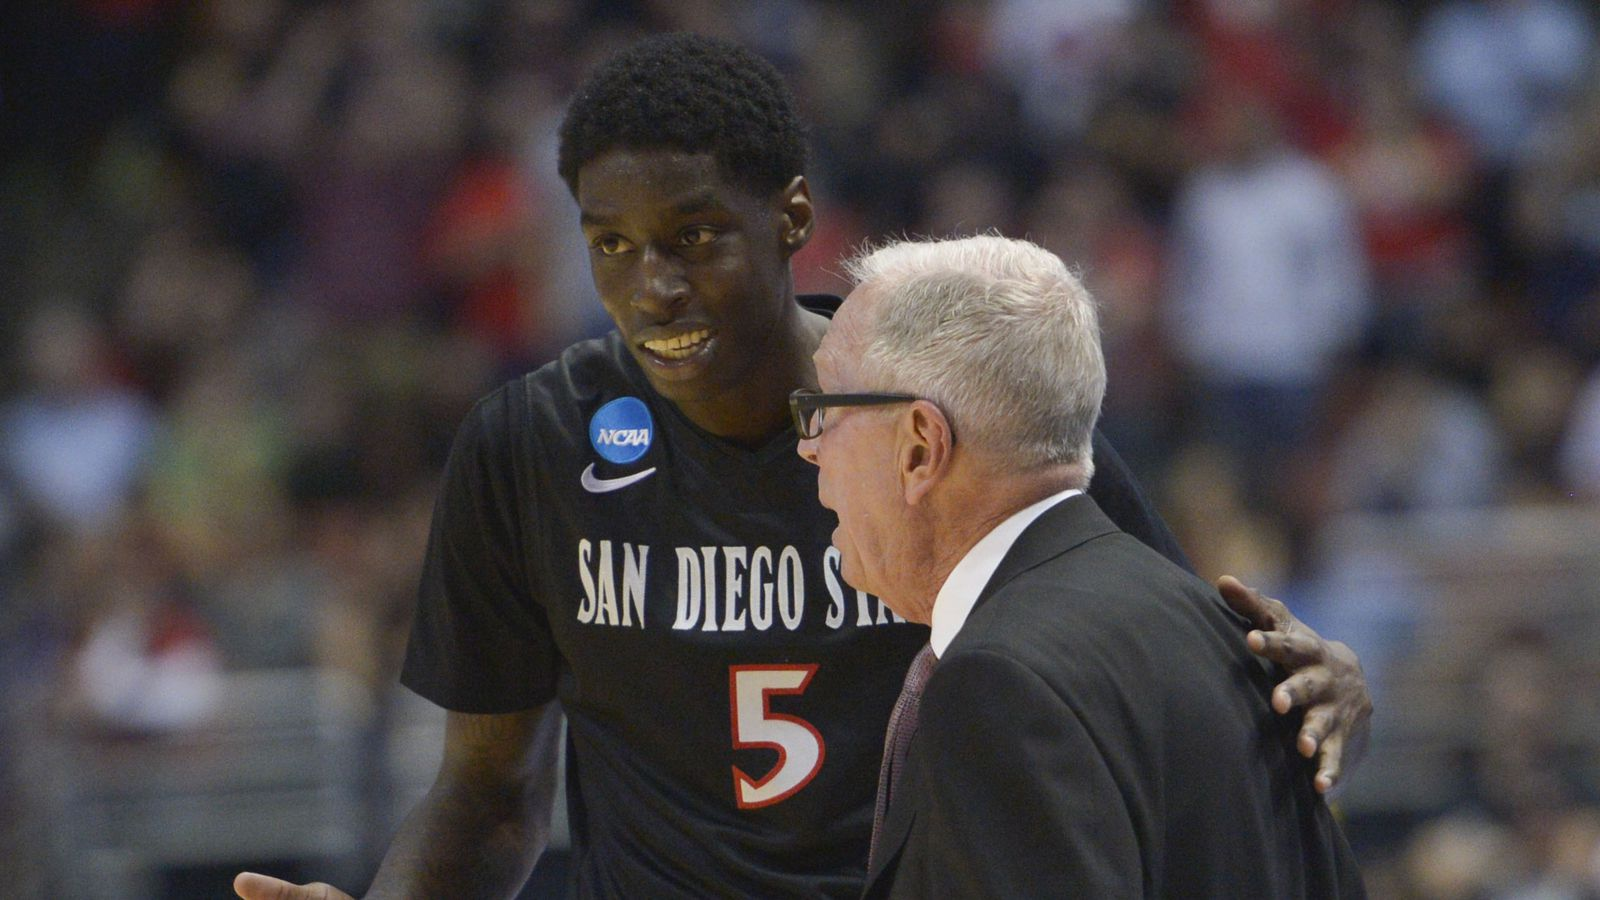 San Diego State basketball preview: The Aztecs are long and athletic once again - SBNation.com